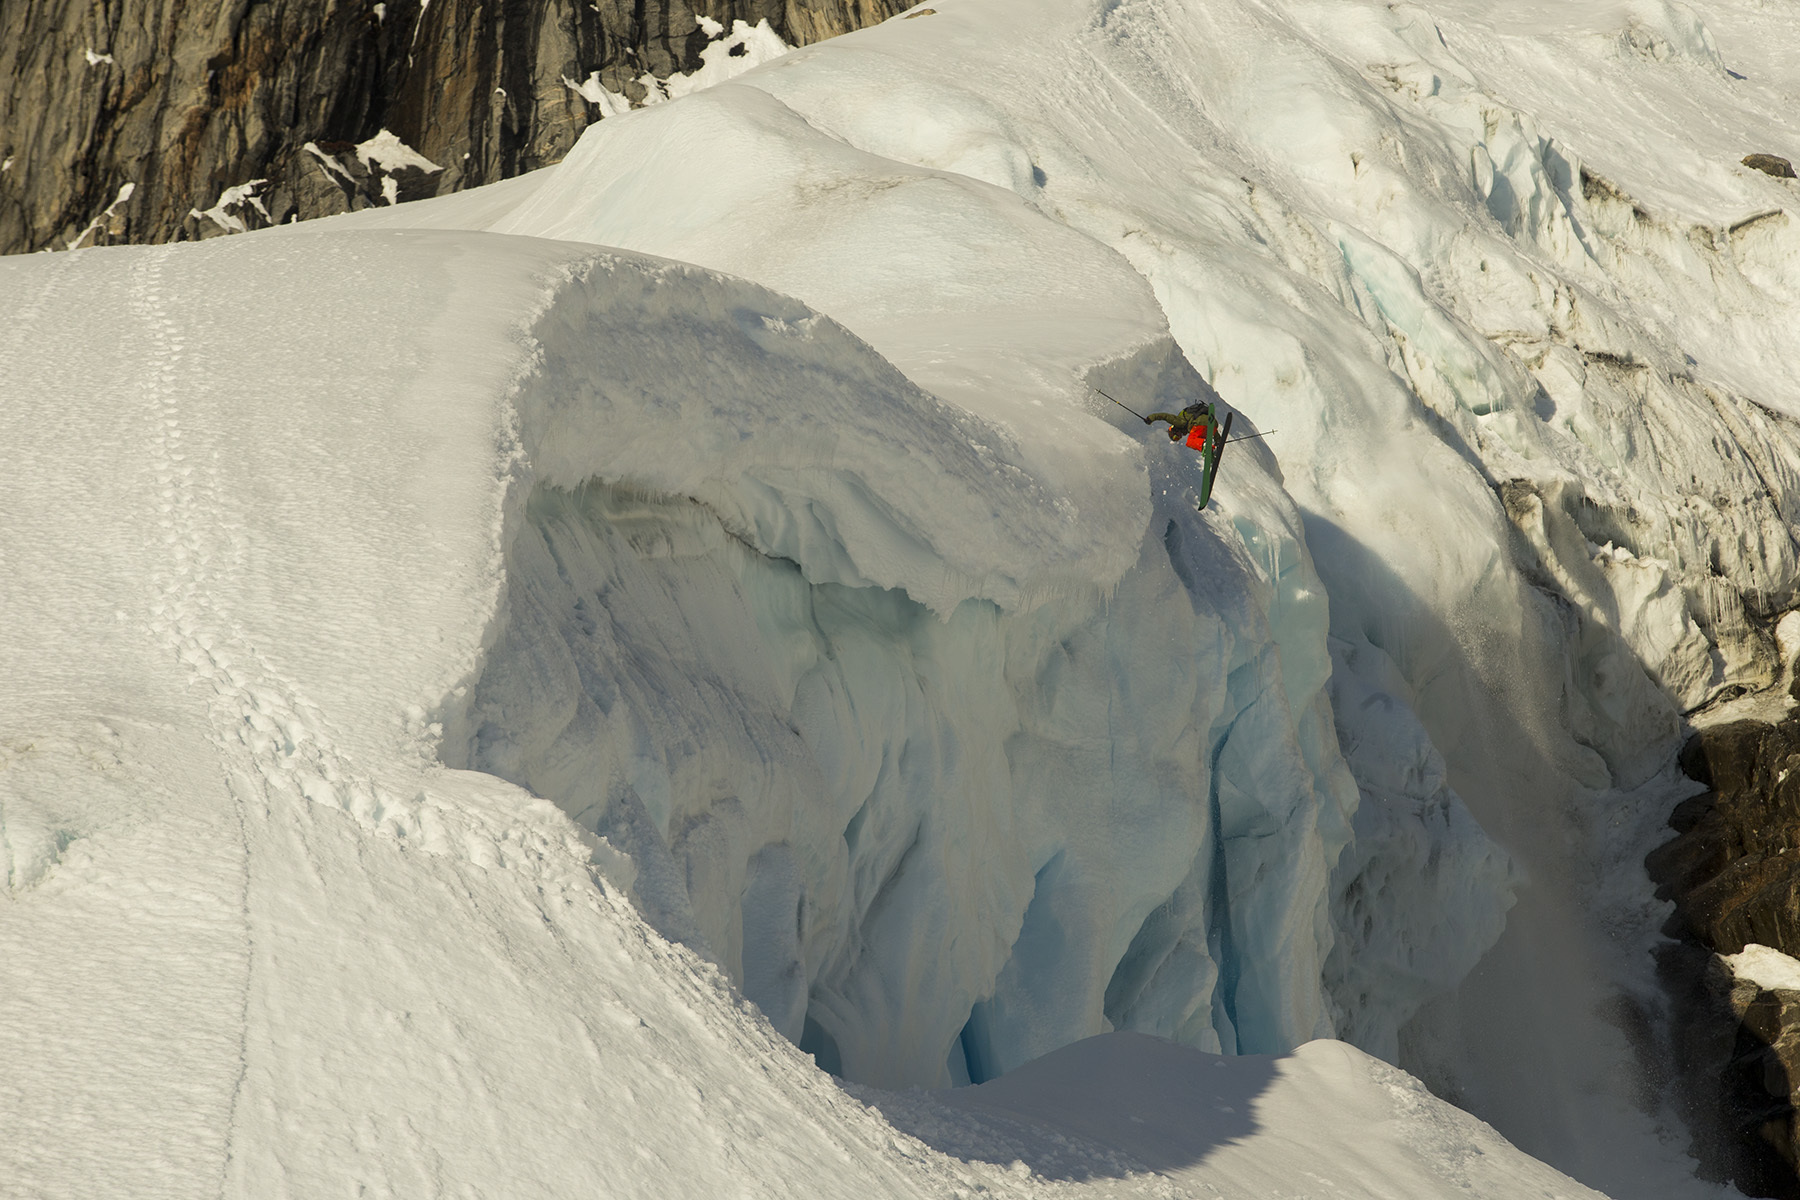 John Collinson, Southeast Greenland